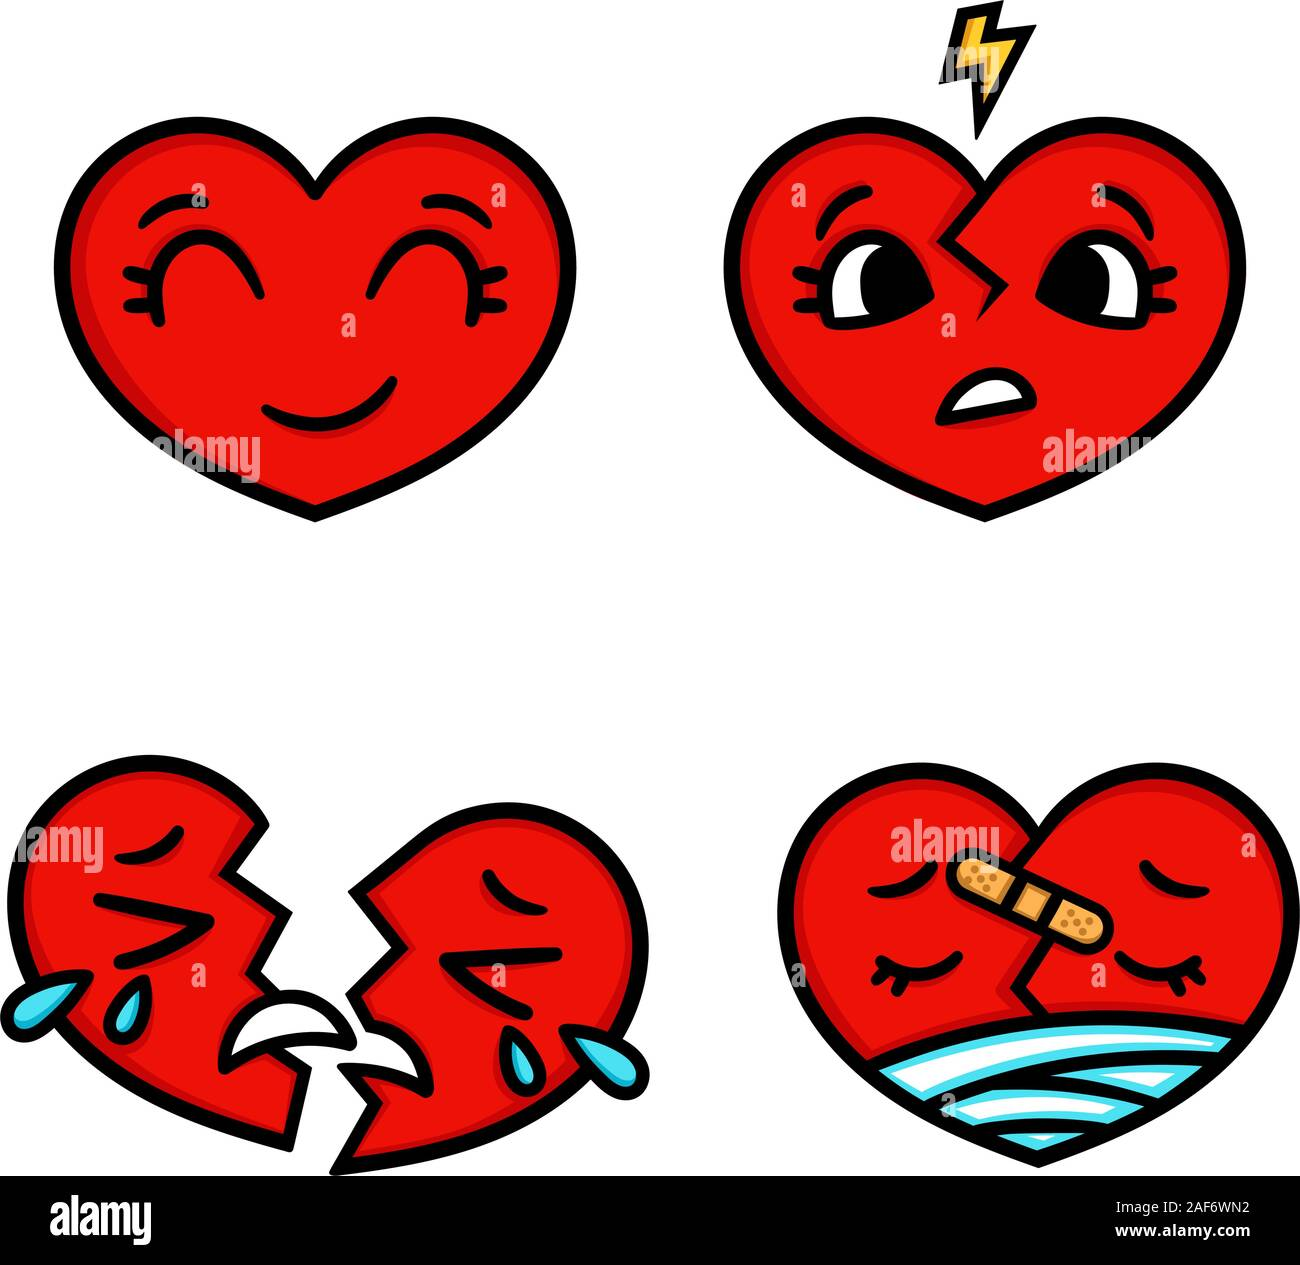 cute cartoon emoticon hearts set happy sad broken doodle style vector heart illustration isolated on white background heart collection emoticon 2AF6WN2